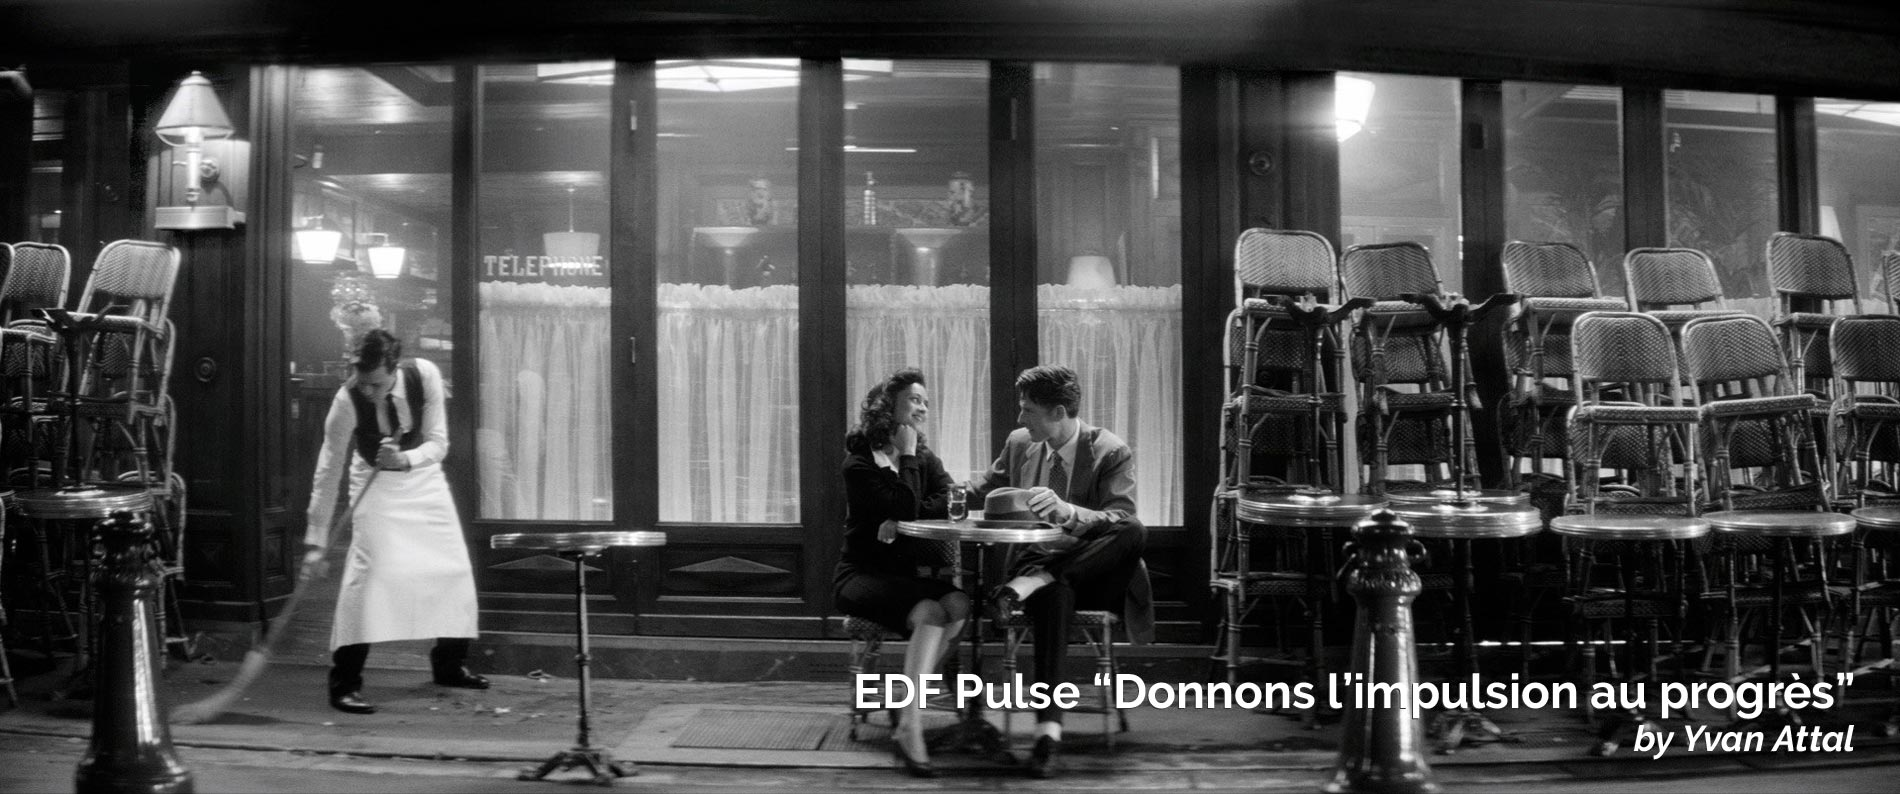 EDF Pulse - Donnons l'impulsion au progrès